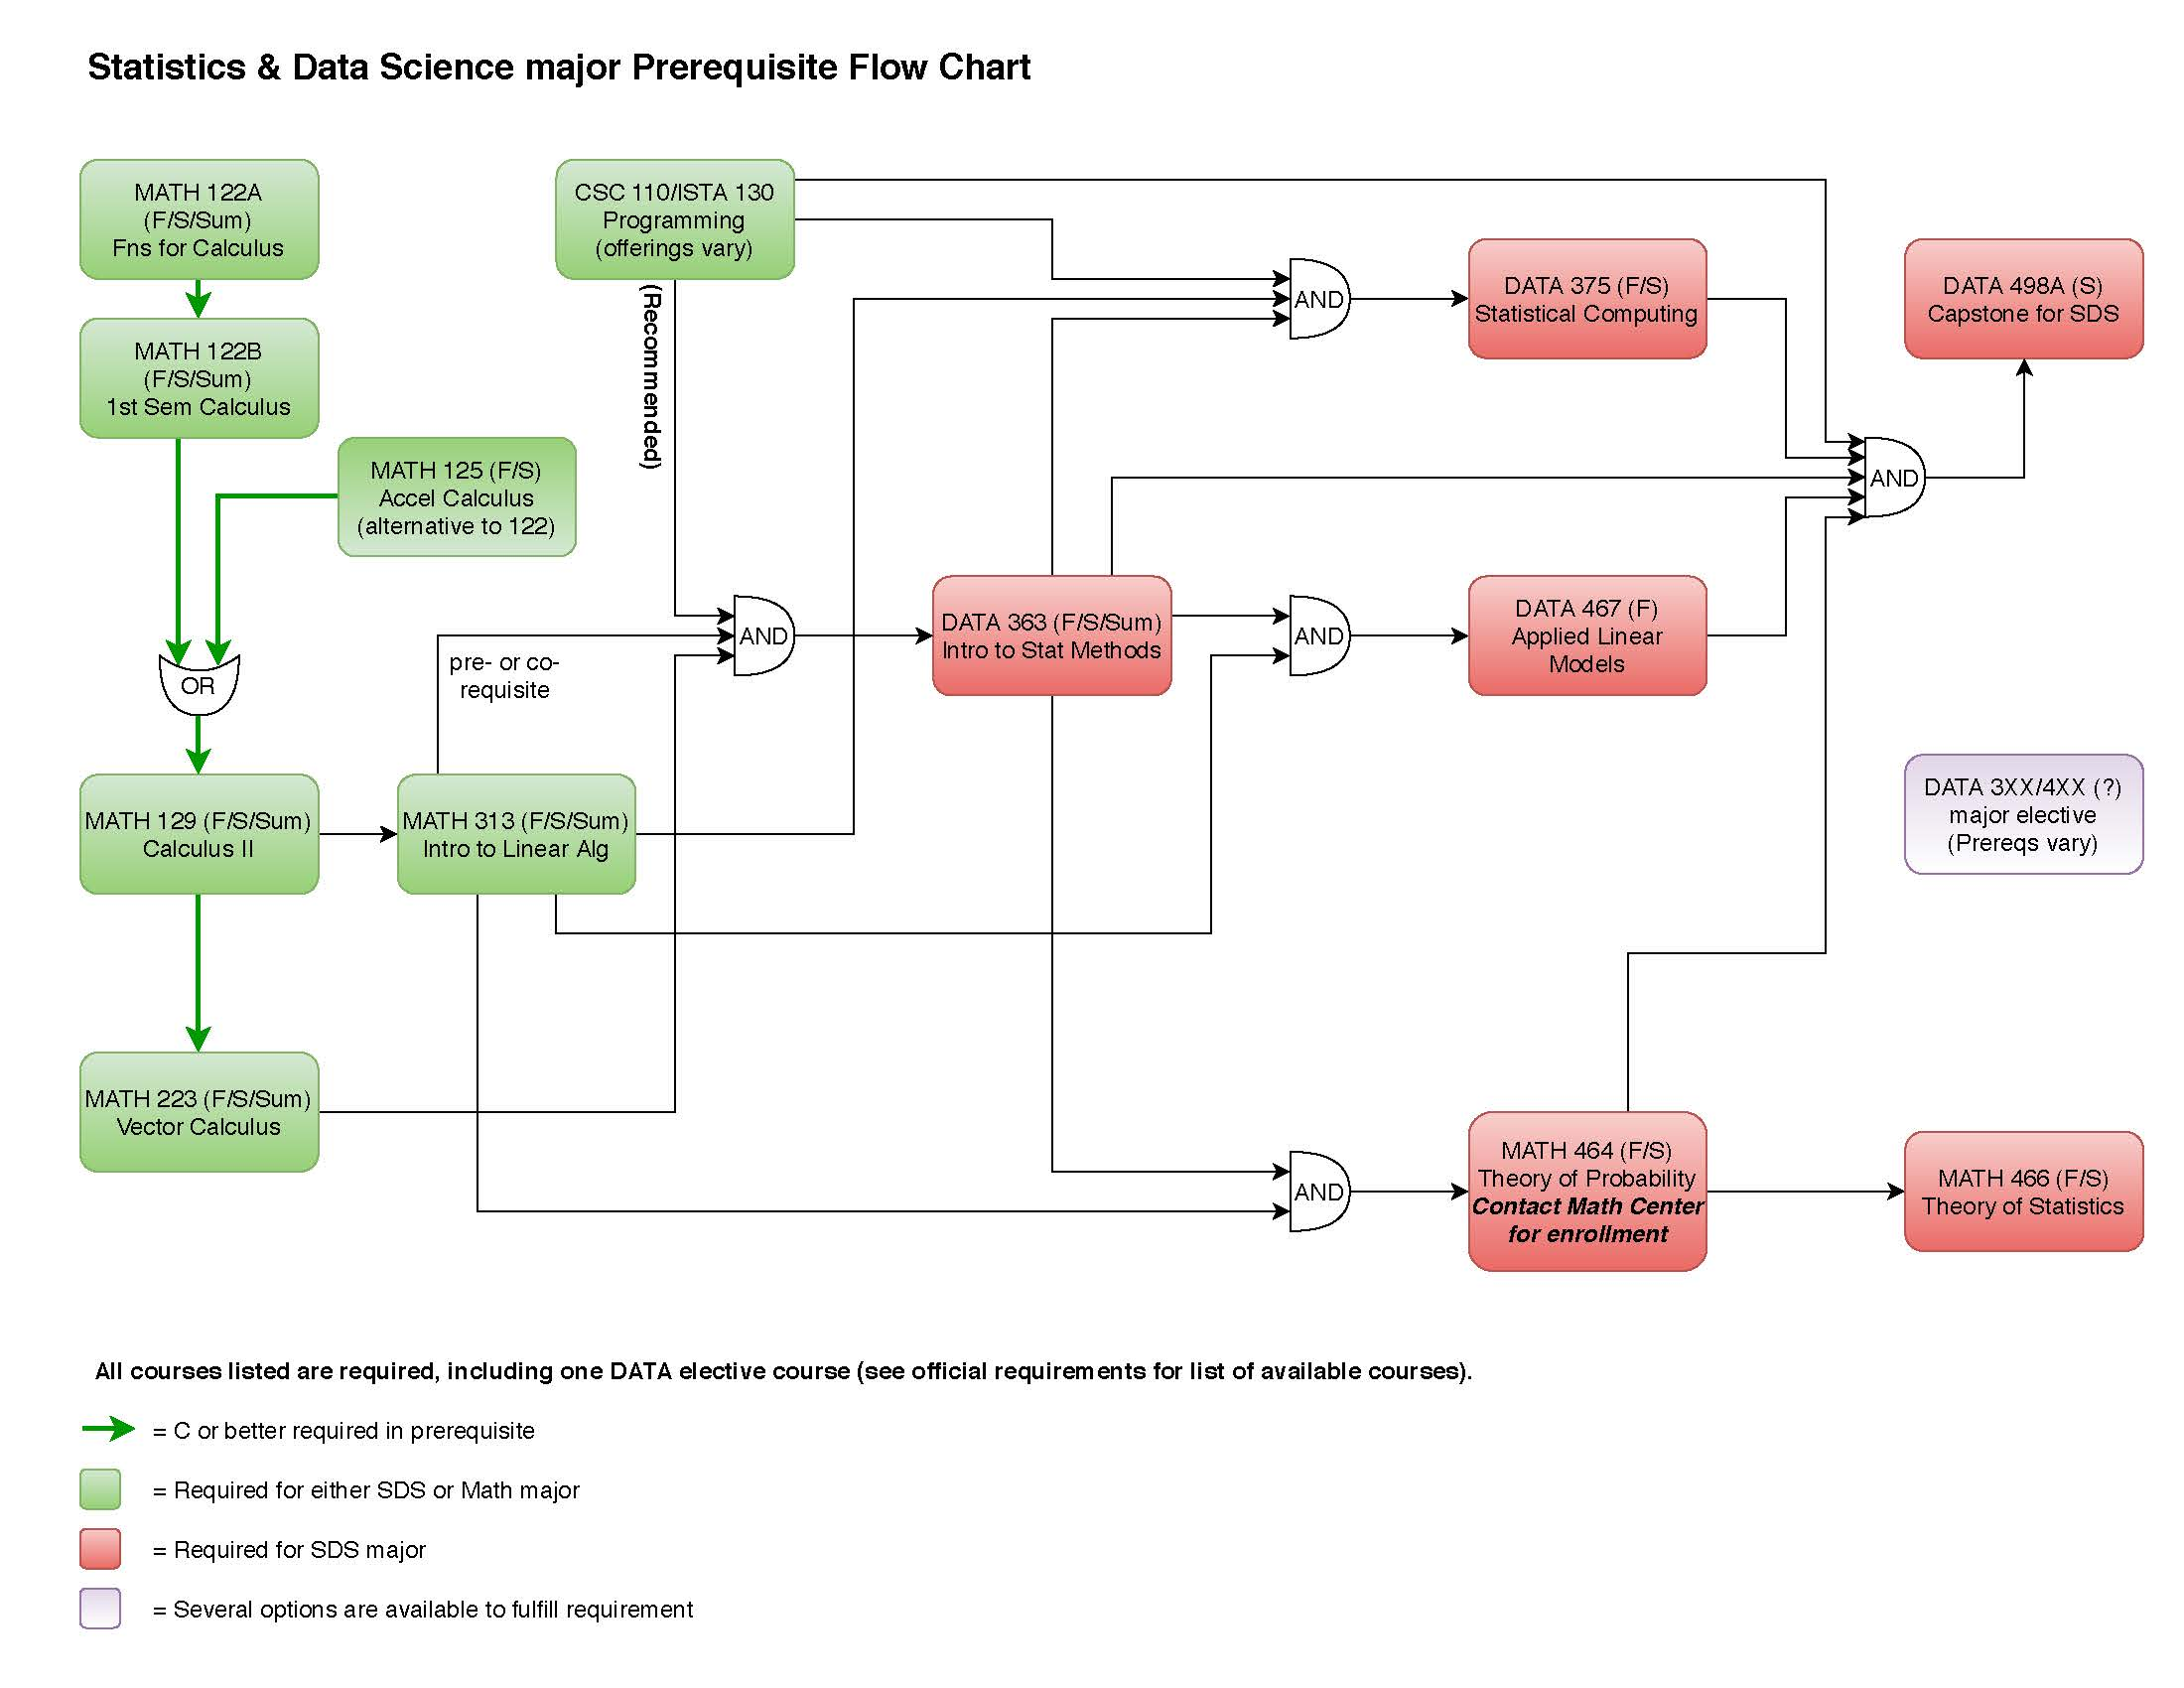 prerequisite flowchart for SDS major (click image for downloadable PDF)